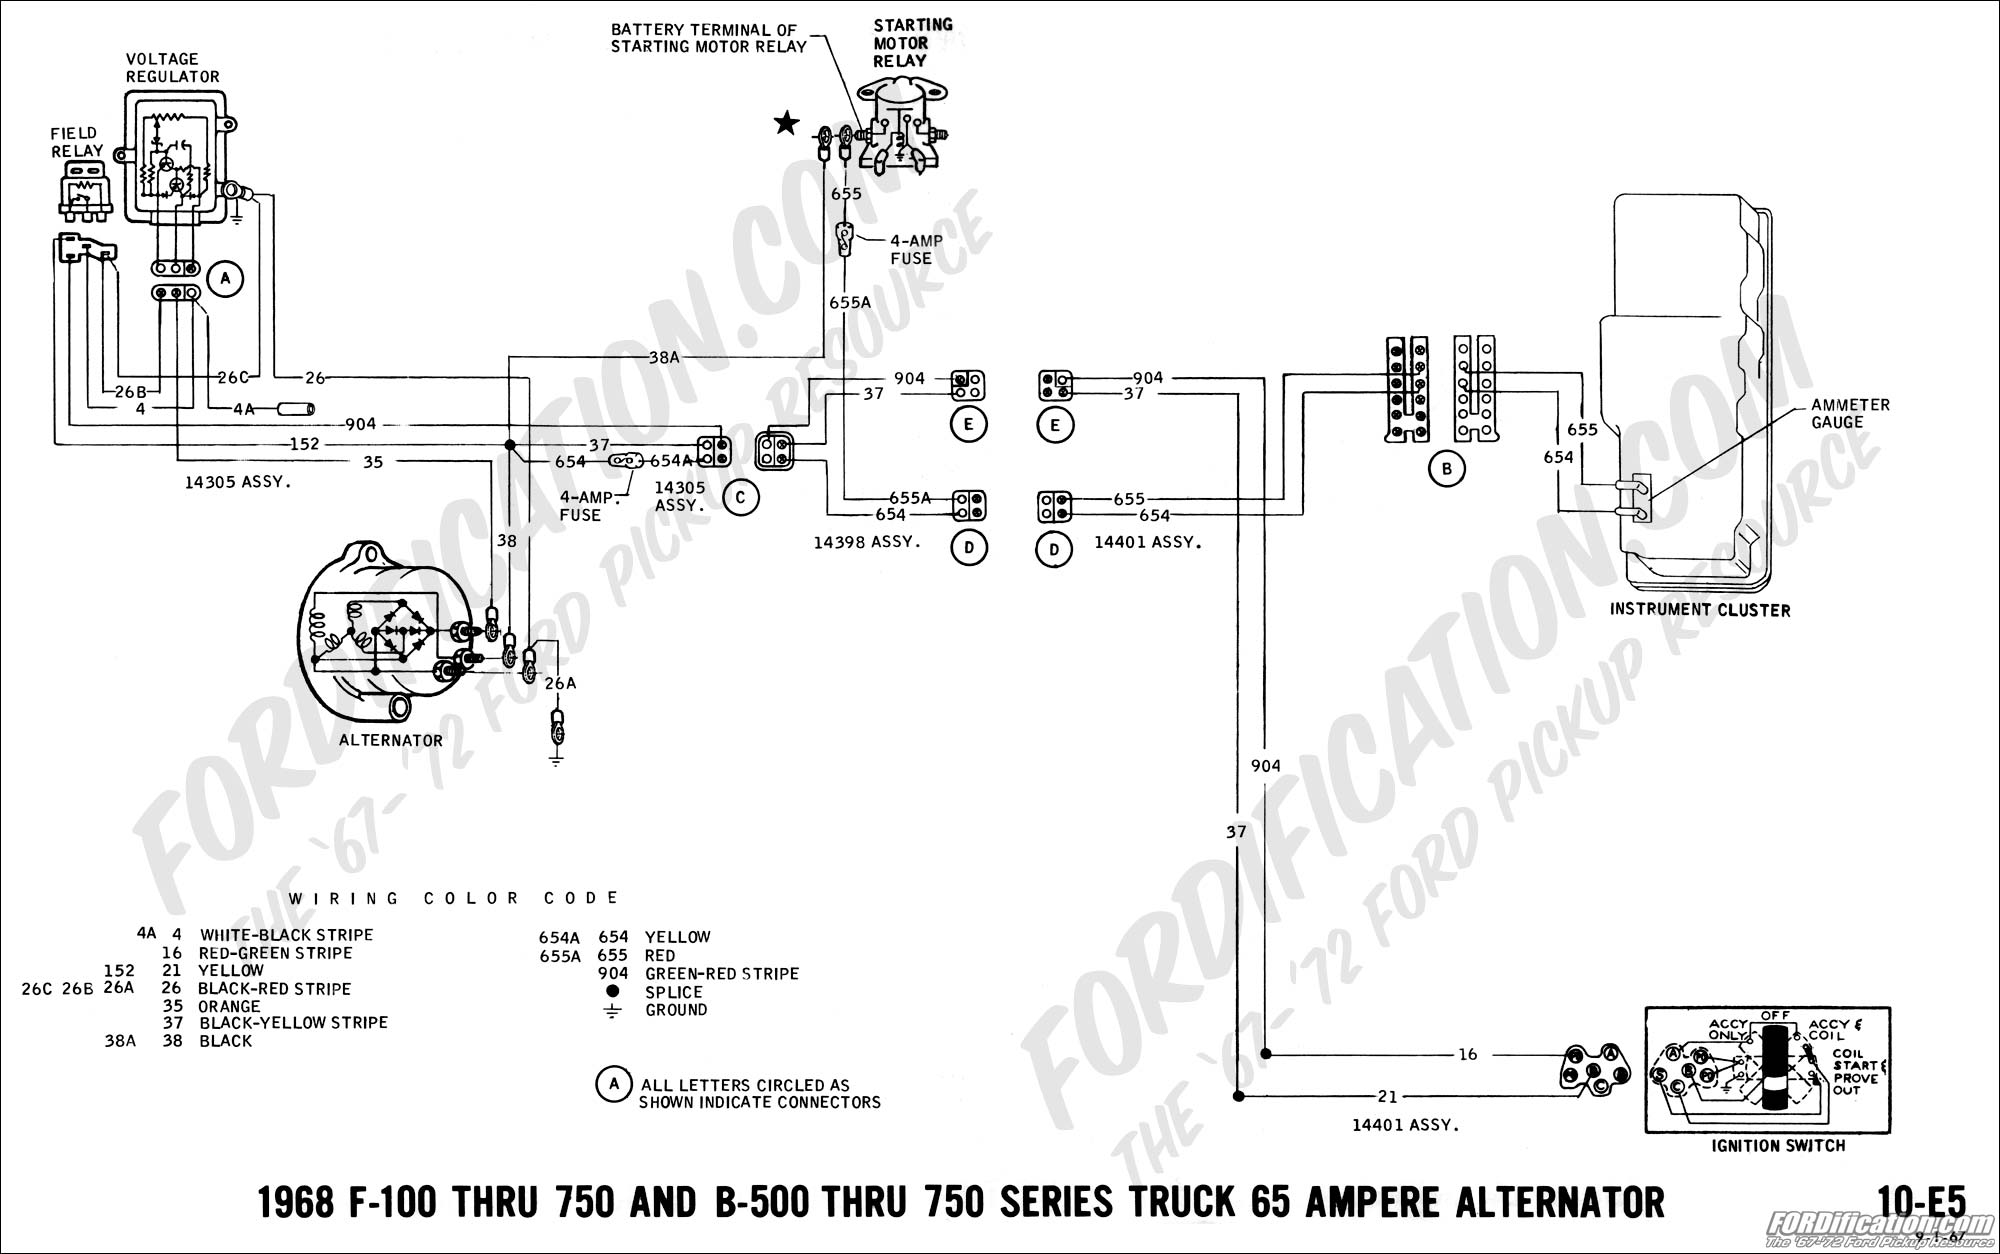 68 07 ford truck technical drawings and schematics section h wiring 1992 ford f150 alternator wiring diagram at mifinder.co